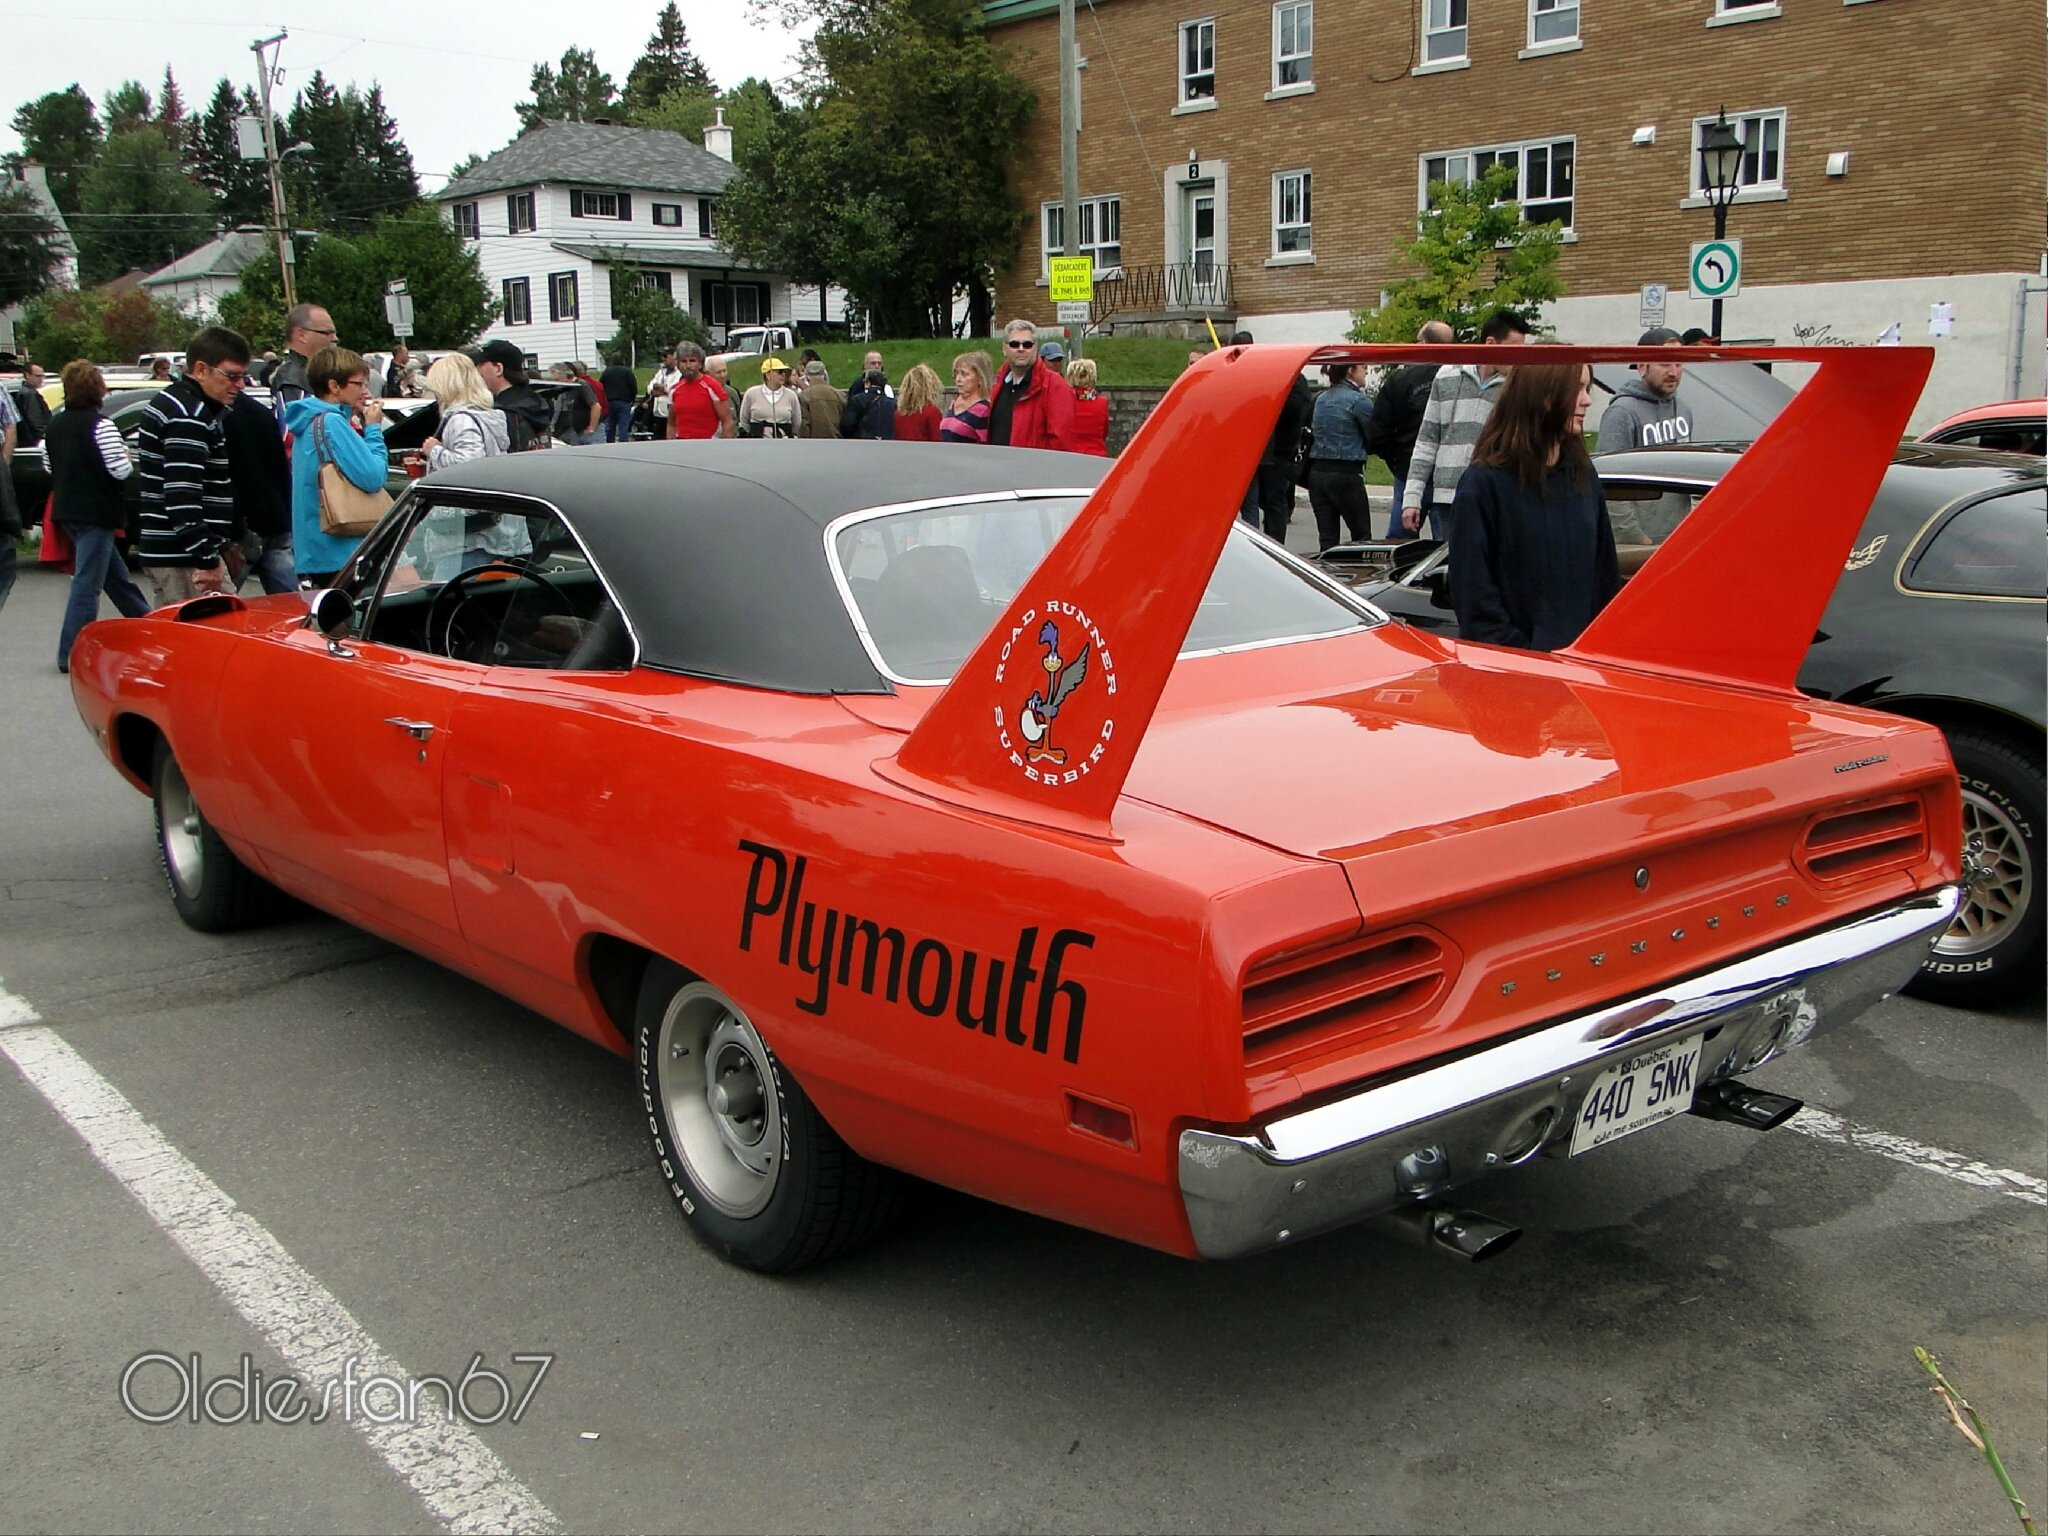 plymouth road runner tous les messages sur plymouth road runner oldiesfan67 mon blog auto. Black Bedroom Furniture Sets. Home Design Ideas